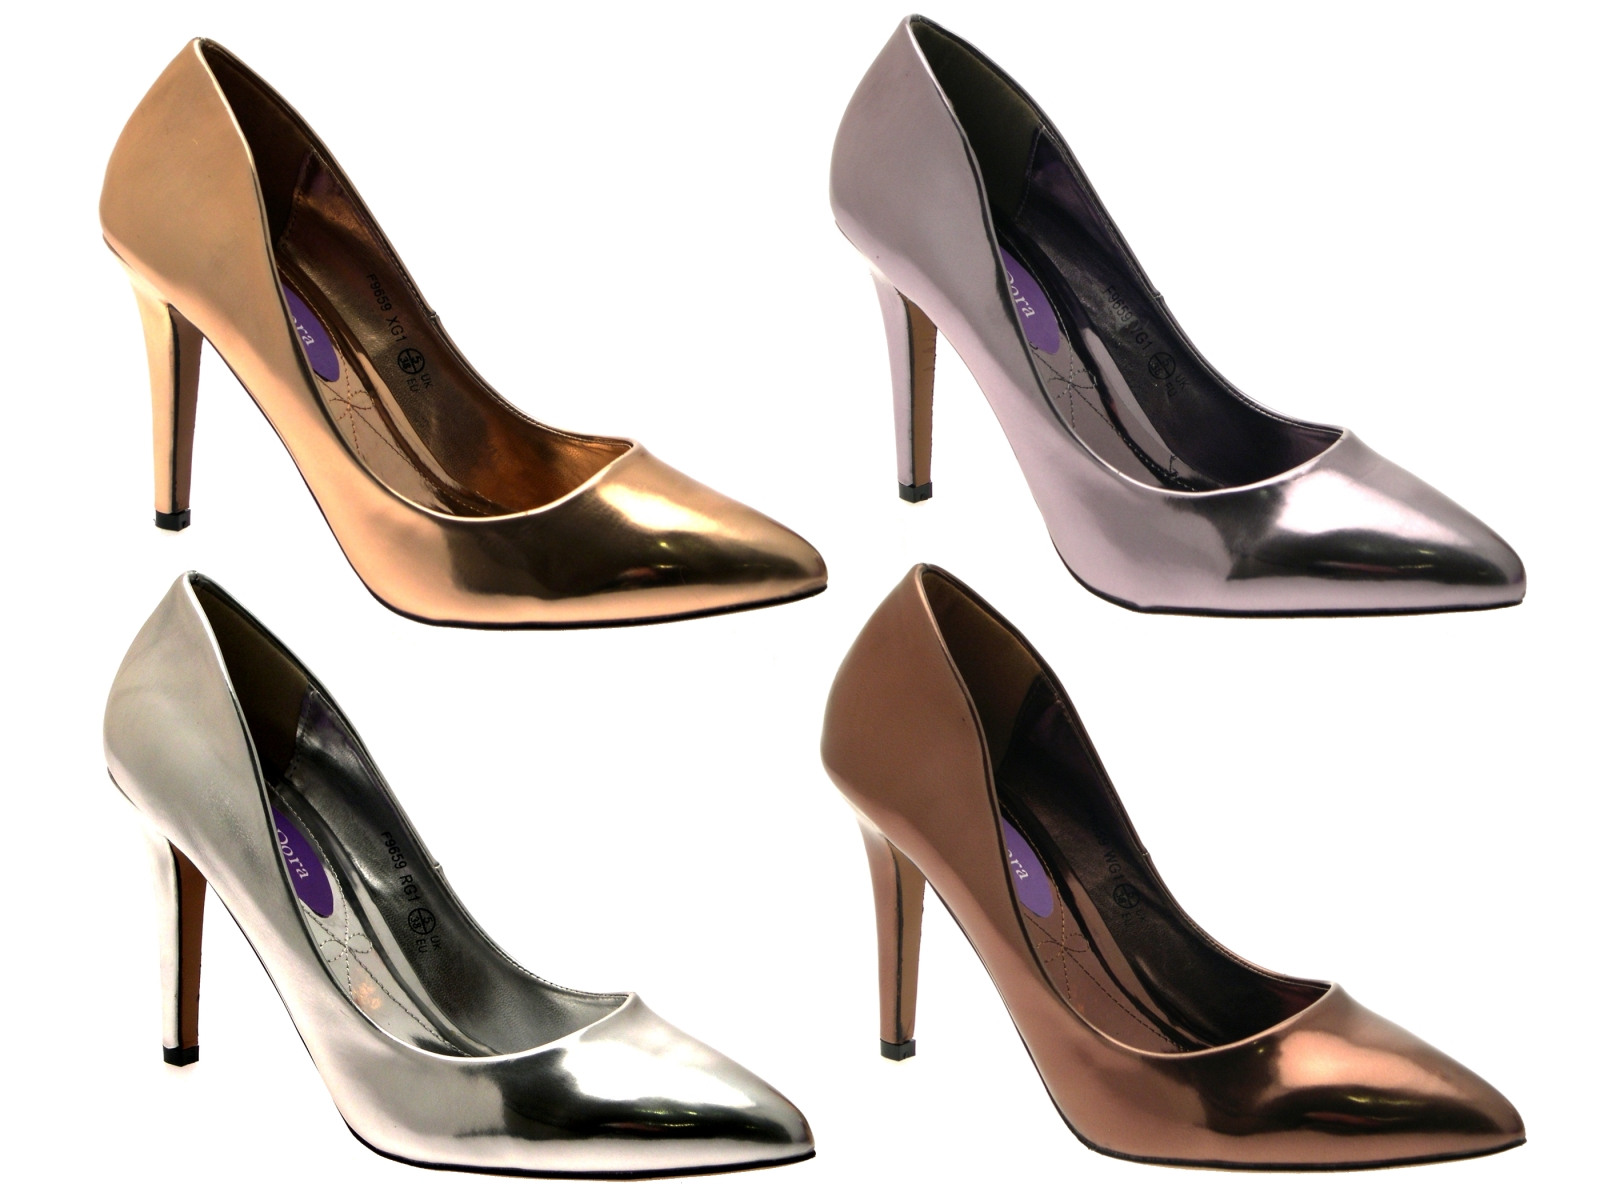 Womens-Metallic-Pointed-Toe-Court-Stiletto-High-Heels-Ladies-Work-Office-Shoes thumbnail 5